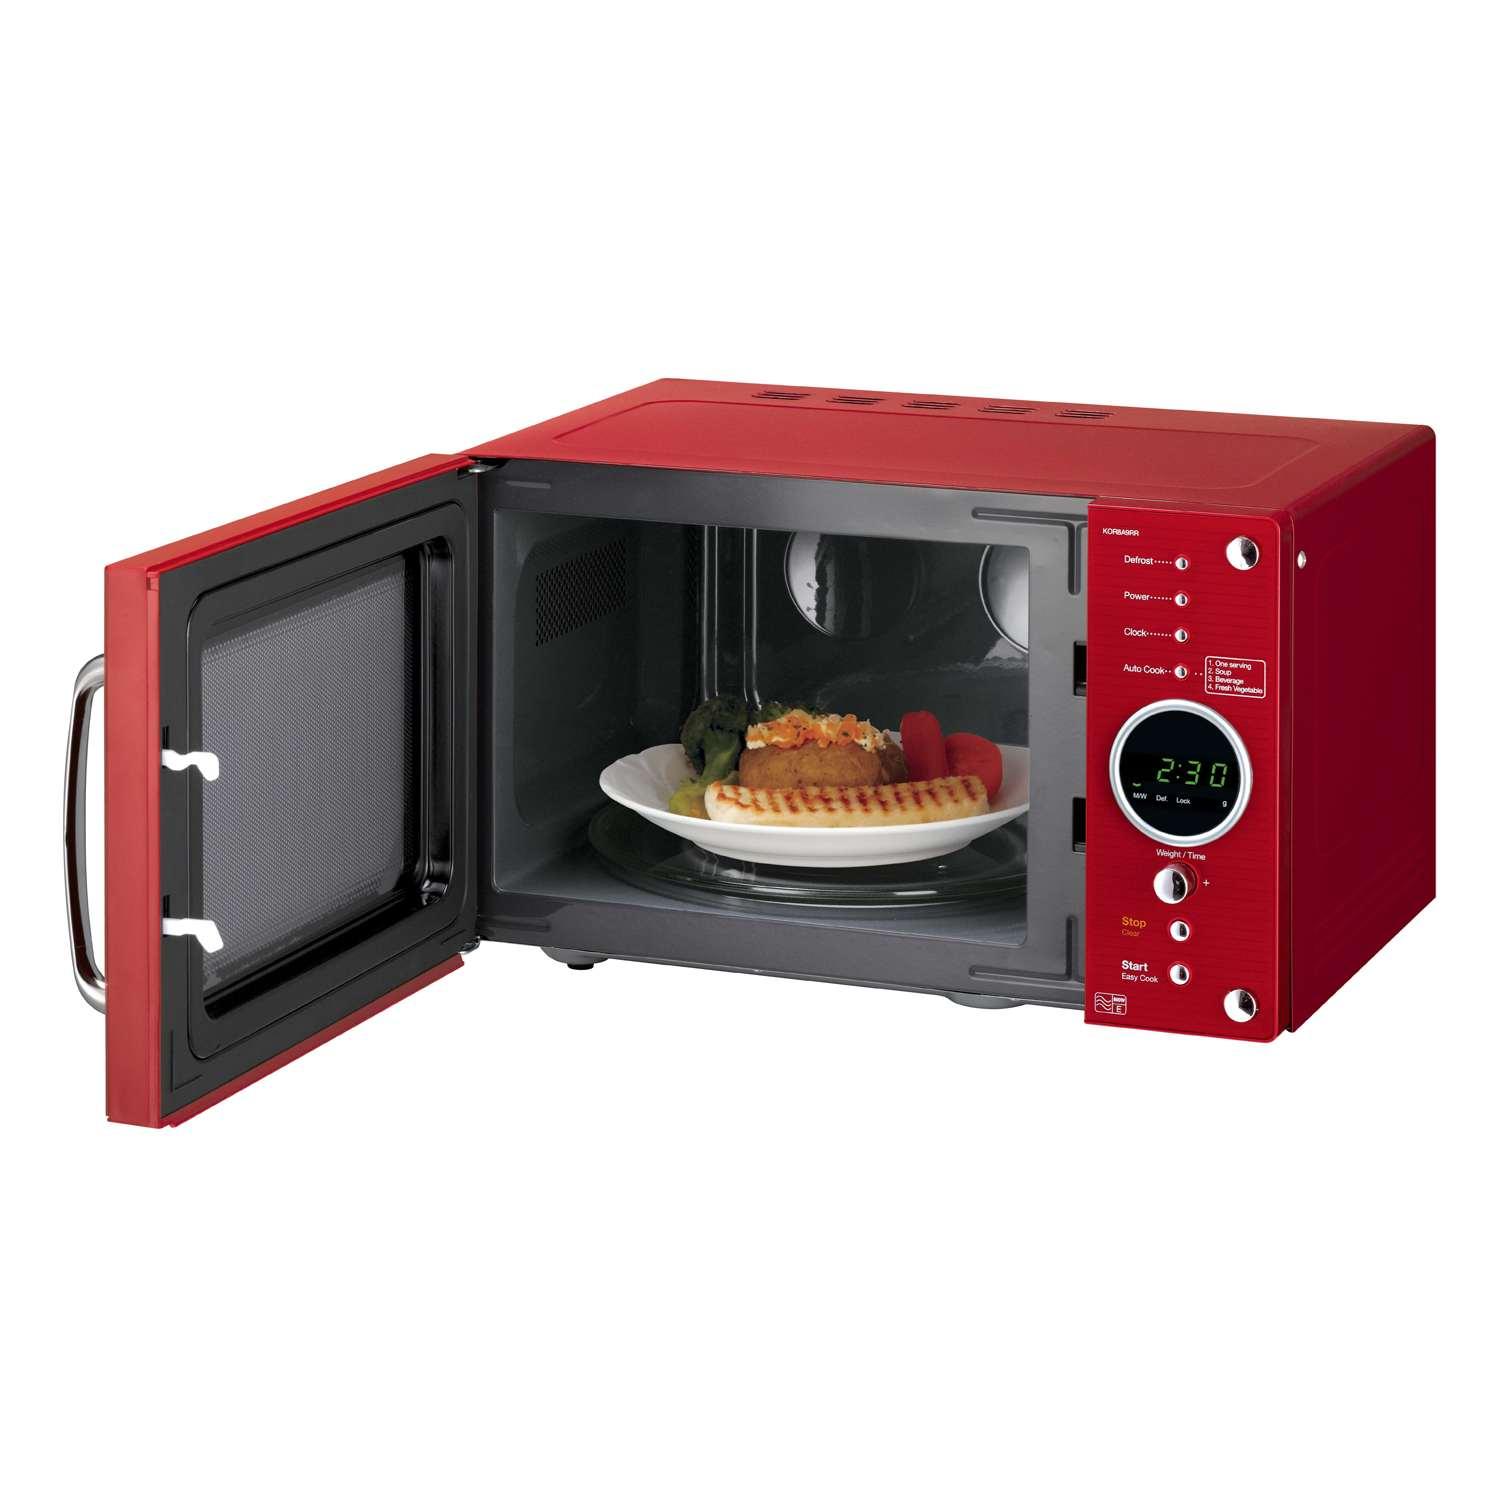 Daewoo Kor8a9rr 23l 800w Touch Control 5 Programmes Retro Microwave Oven In Red 62 99